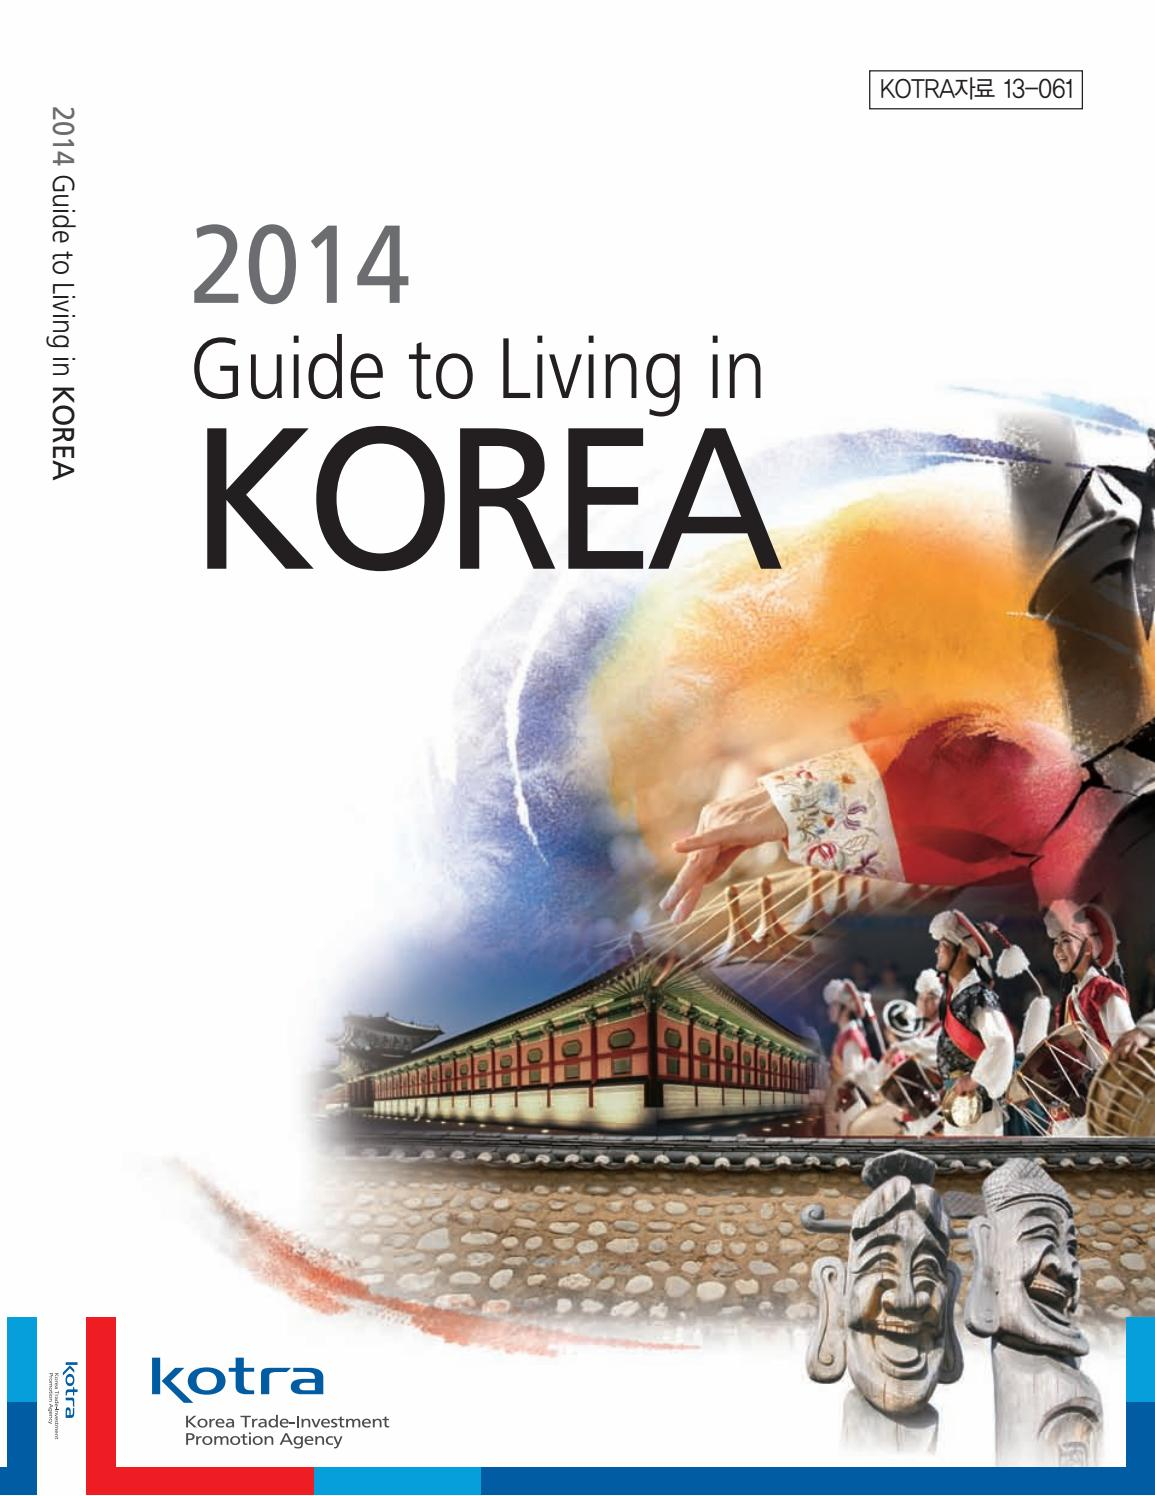 2014guidetolivinginkorea en by KOCIS - issuu